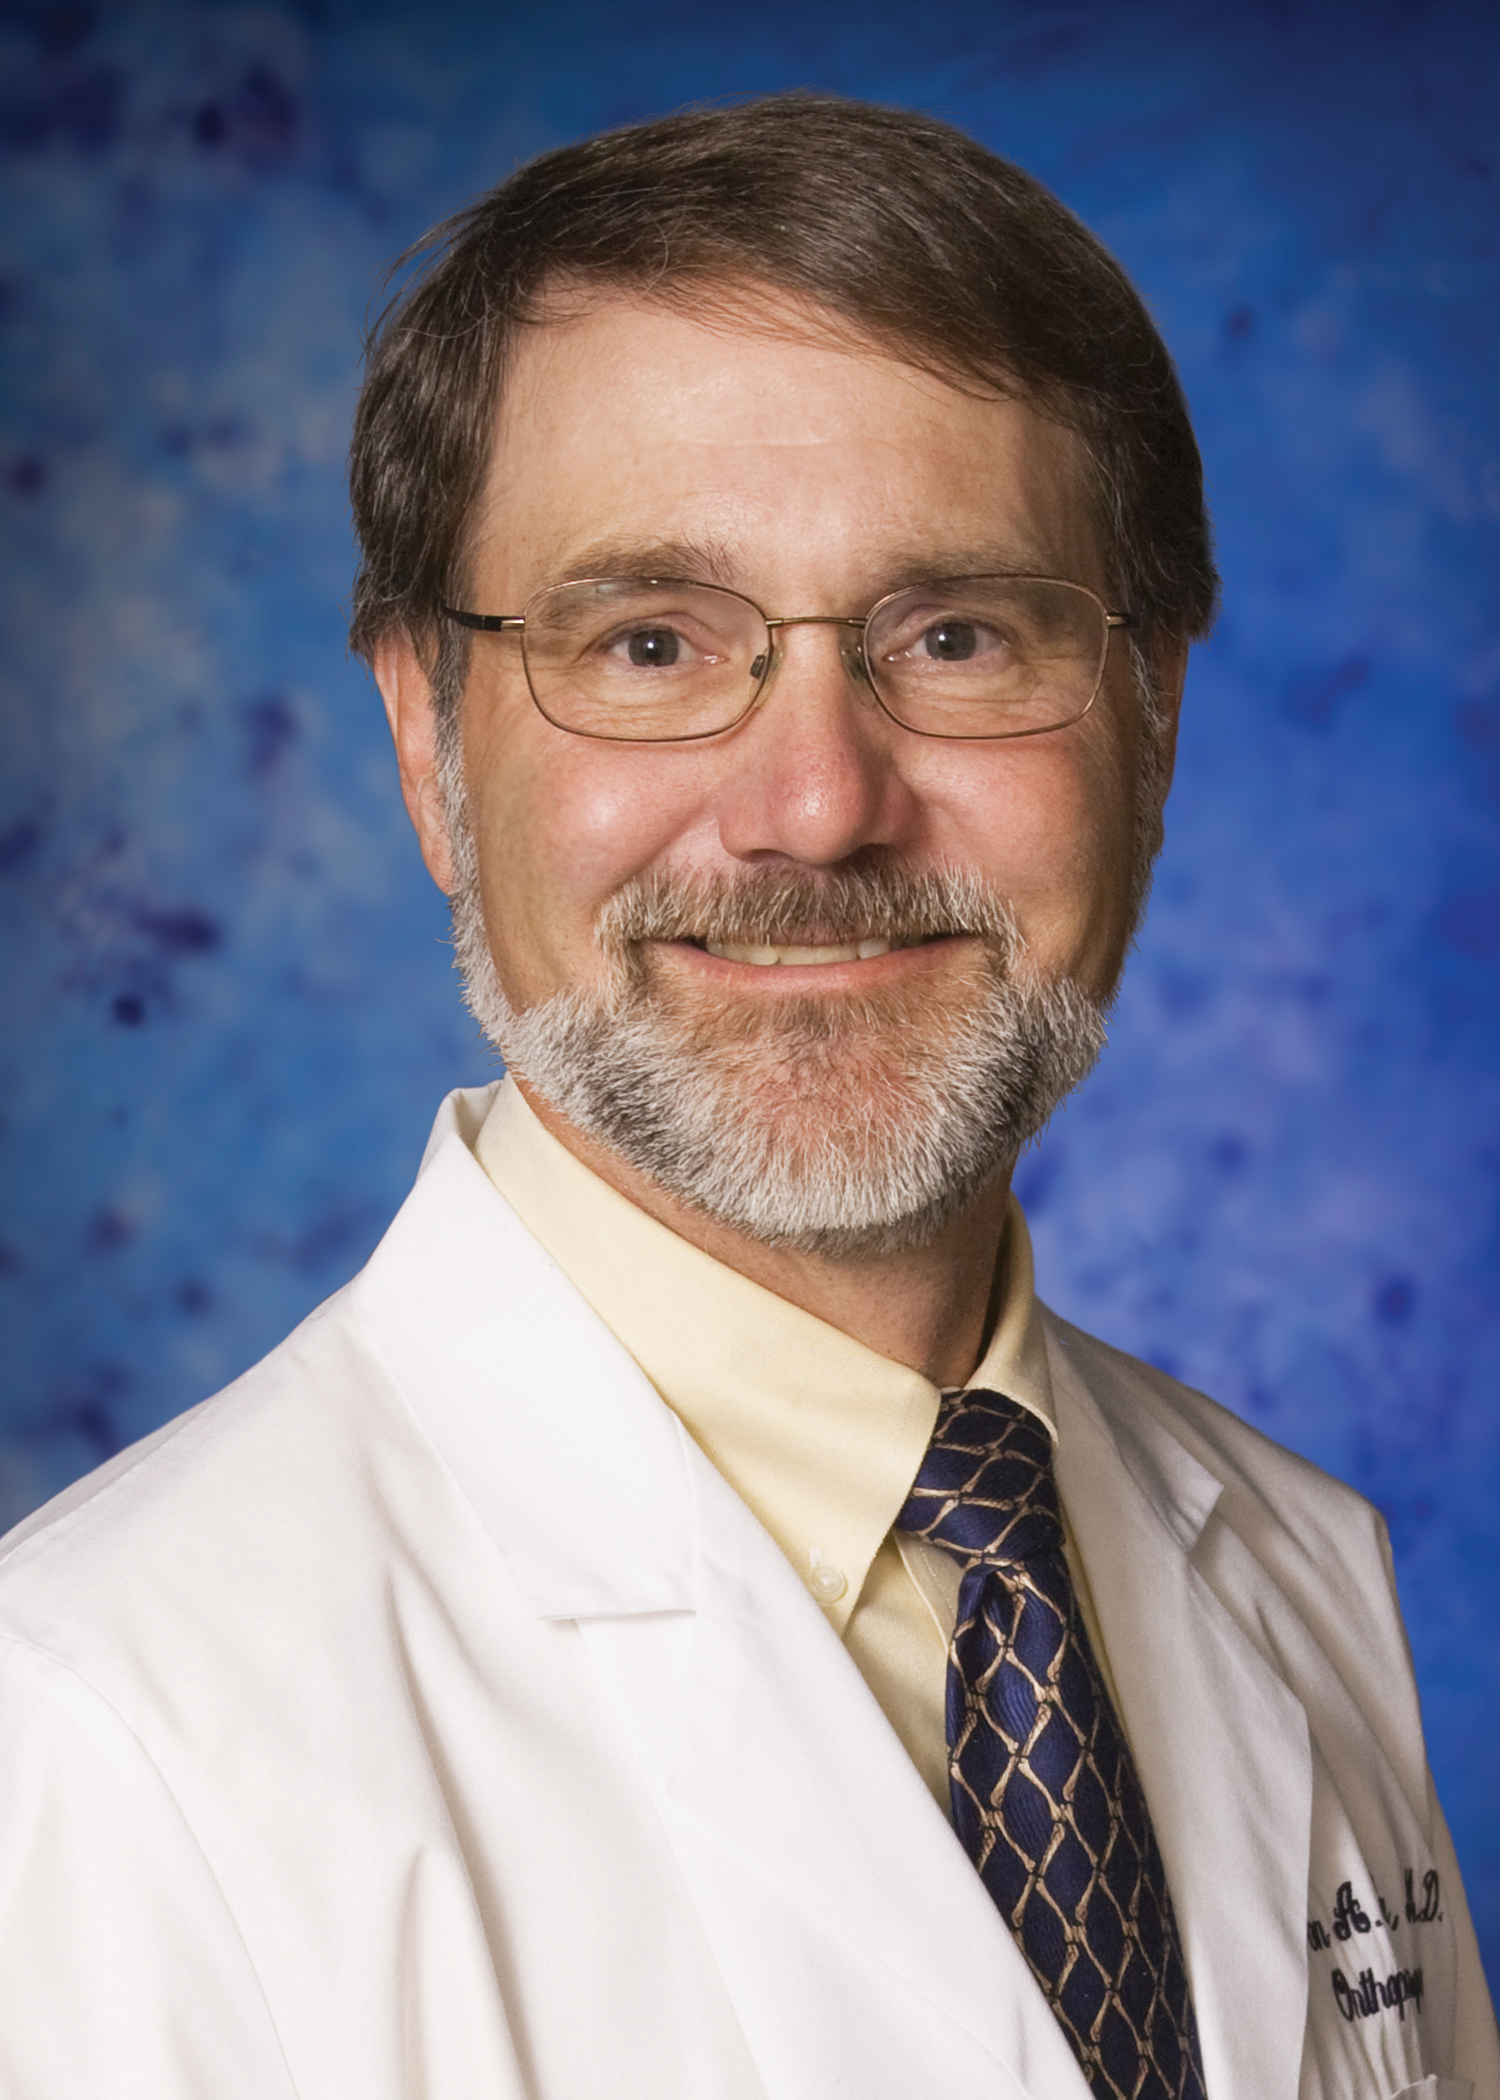 Jon Simpson, MD is an orthopedic surgeon and a member of the medical team at Cumberland Orthopedics.